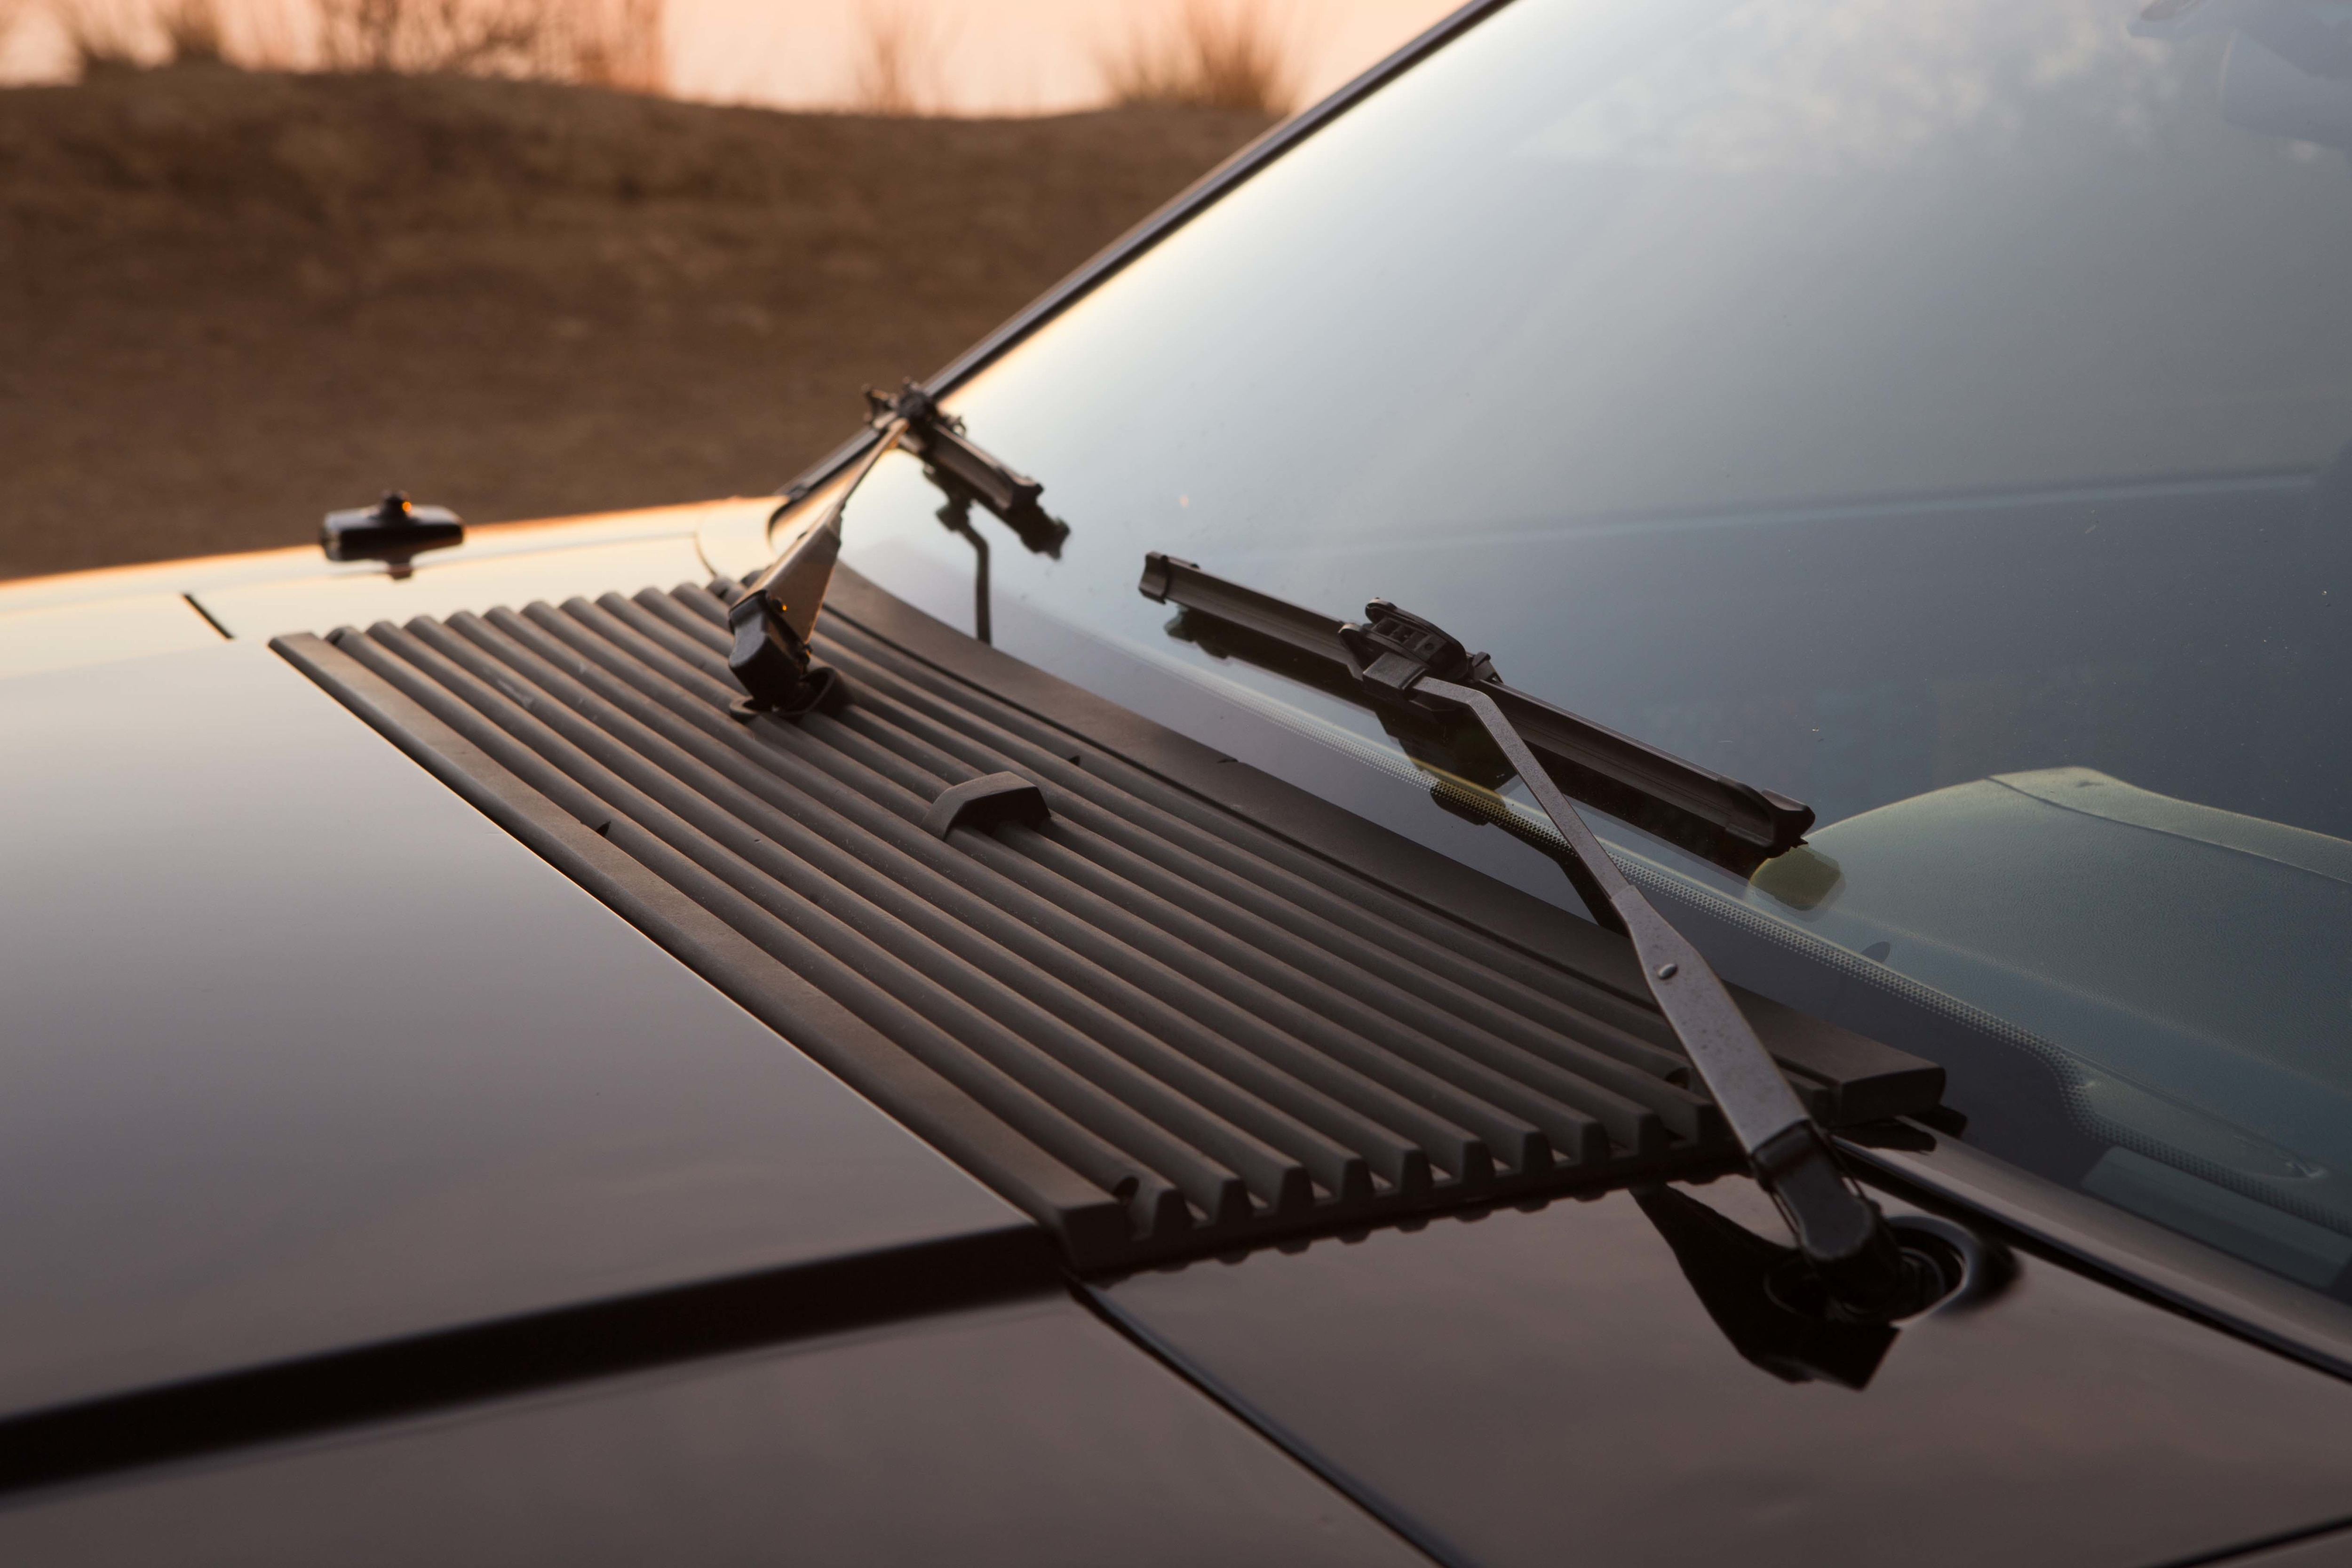 1988 Ford Mustang Wipers